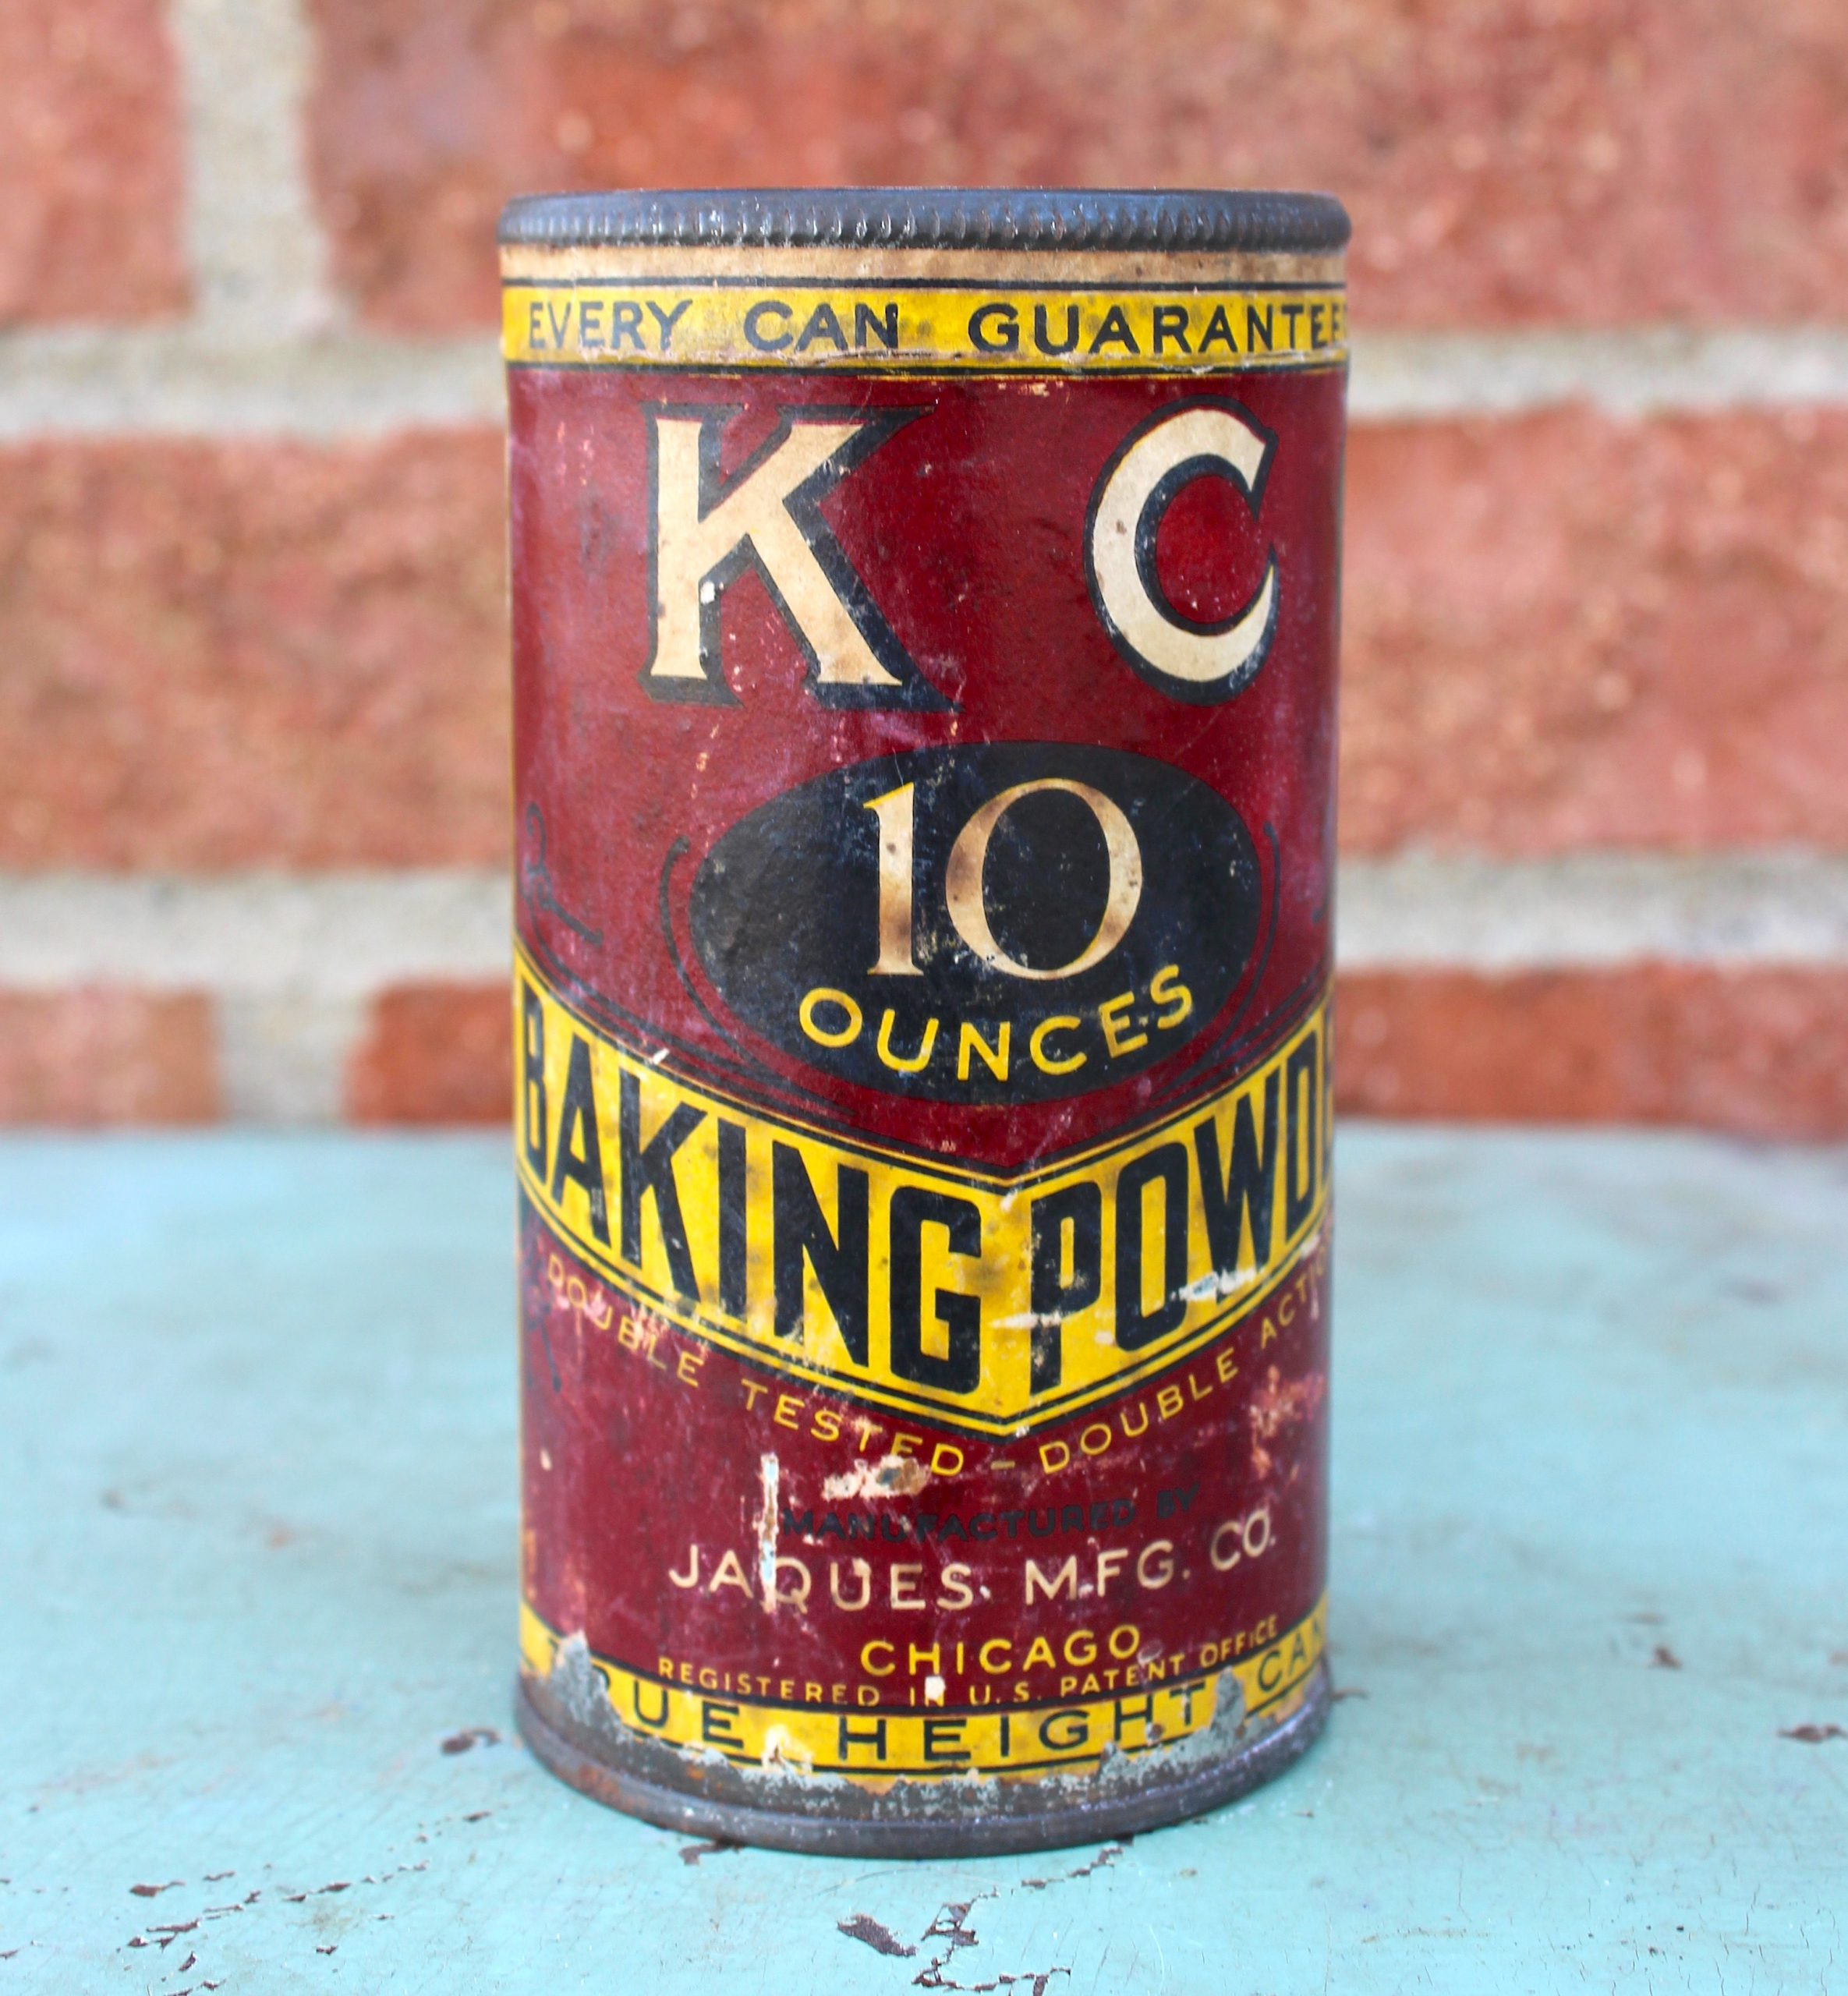 KC Baking Powder - Jaques MFG History